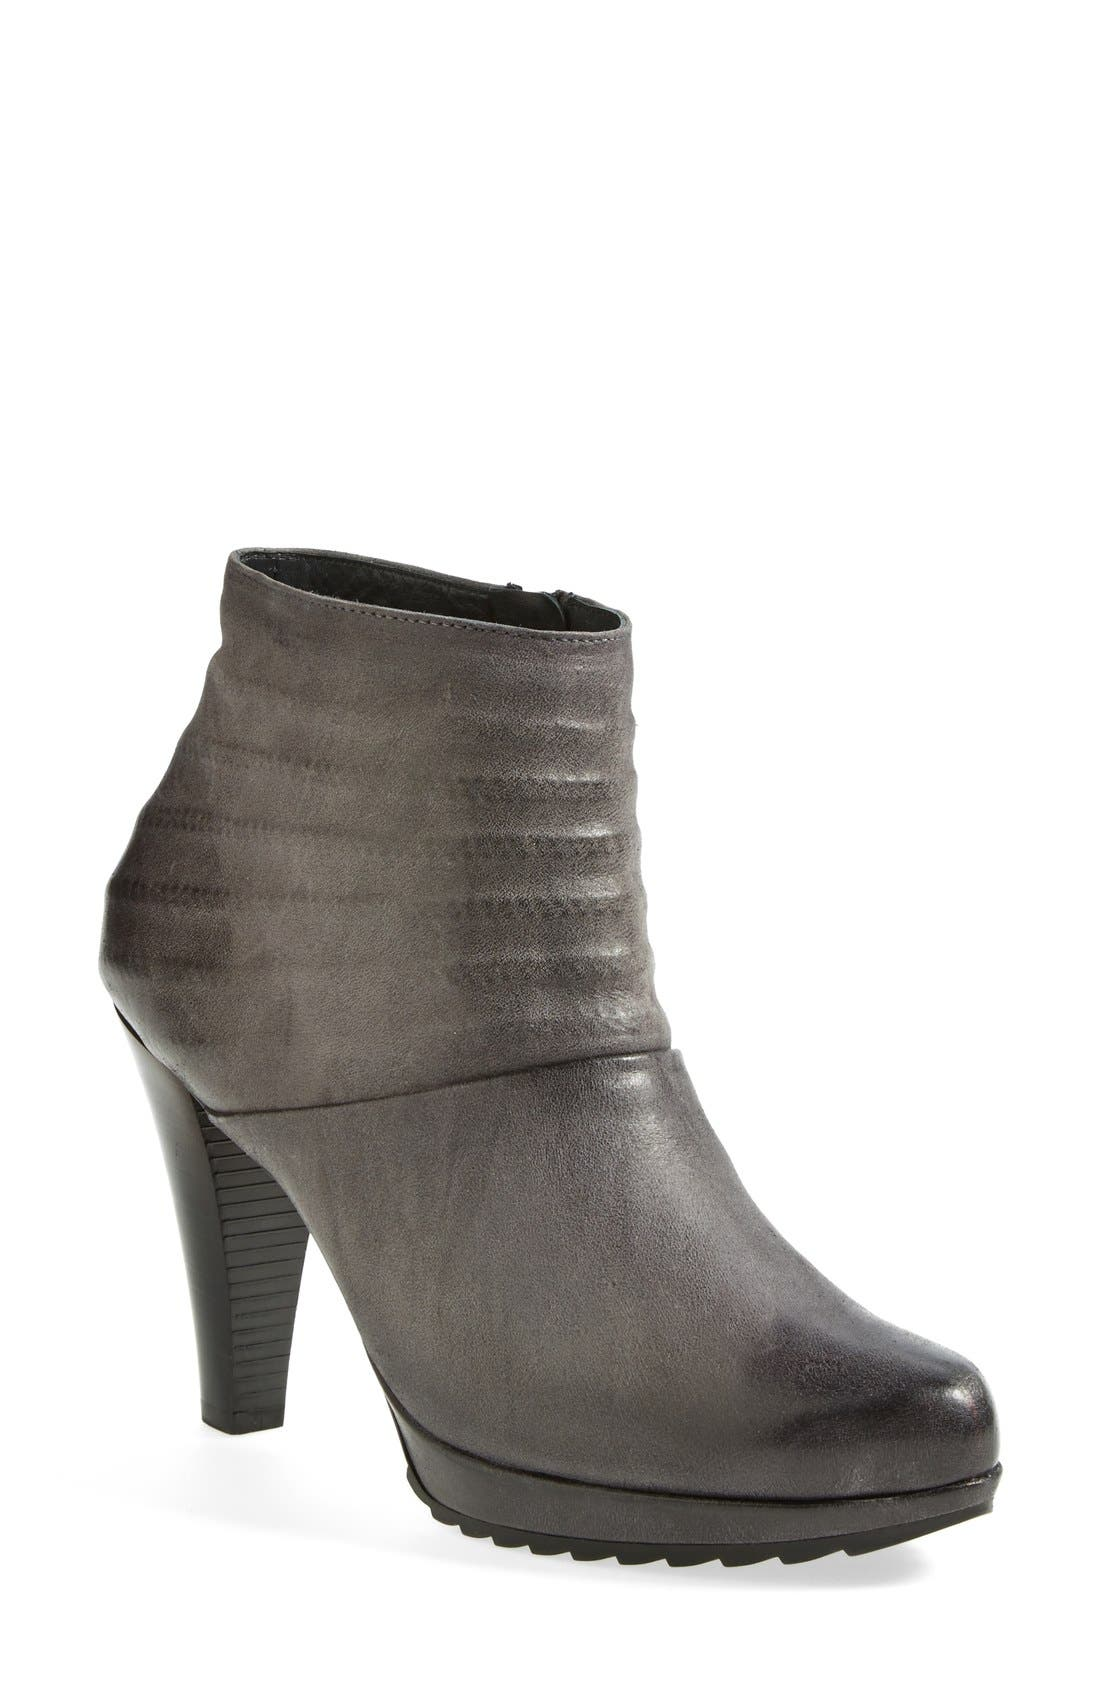 Alternate Image 1 Selected - Paul Green 'Belmont' Leather Bootie (Women)